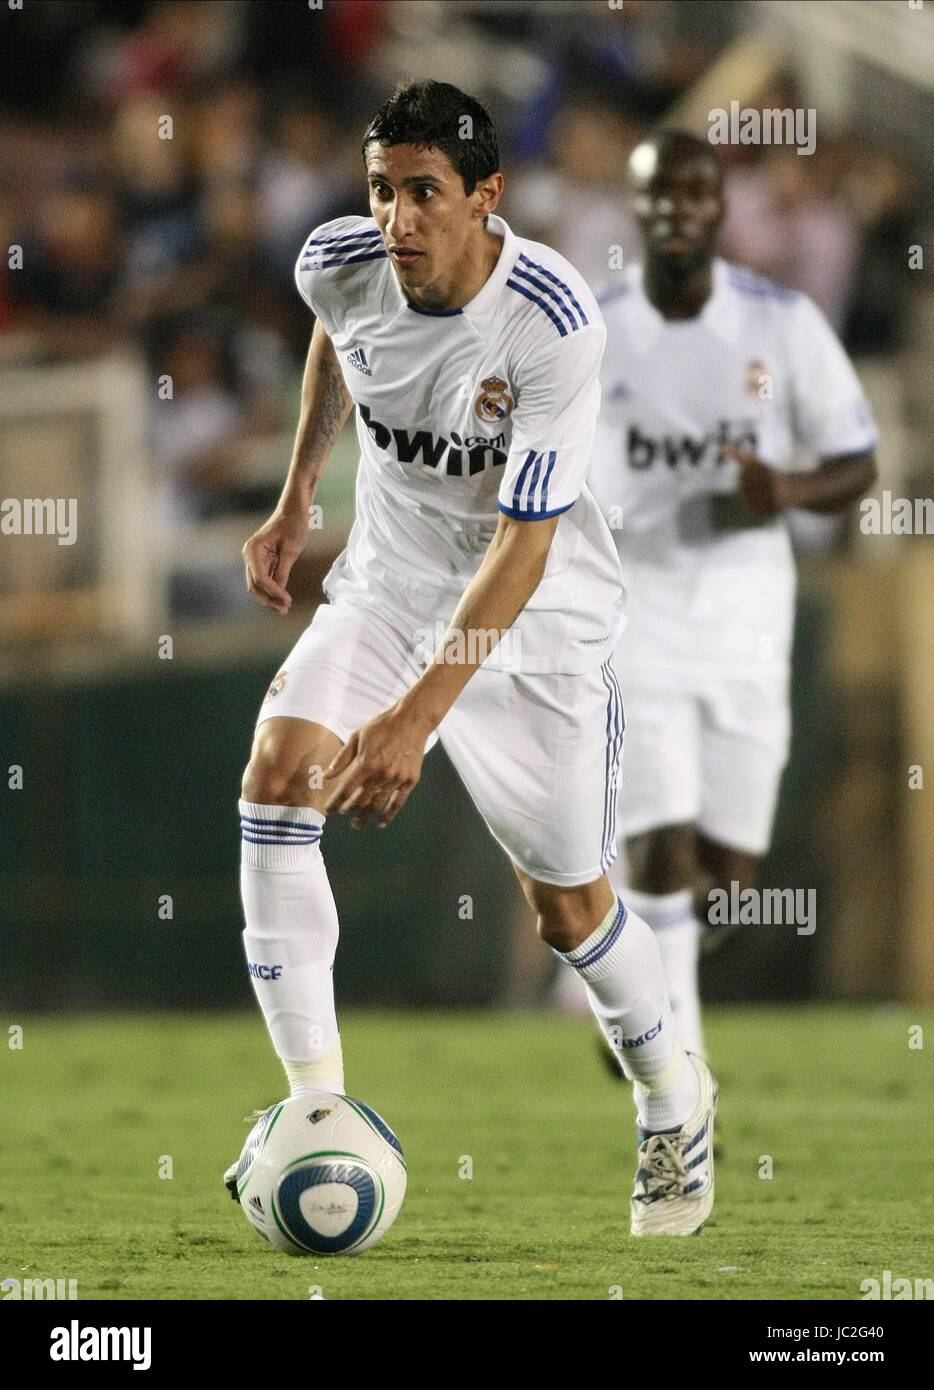 dc9f743a012 ANGEL DI MARIA REAL MADRID LOS ANGELES CALIFORNIA USA 07 August 2010 -  Stock Image